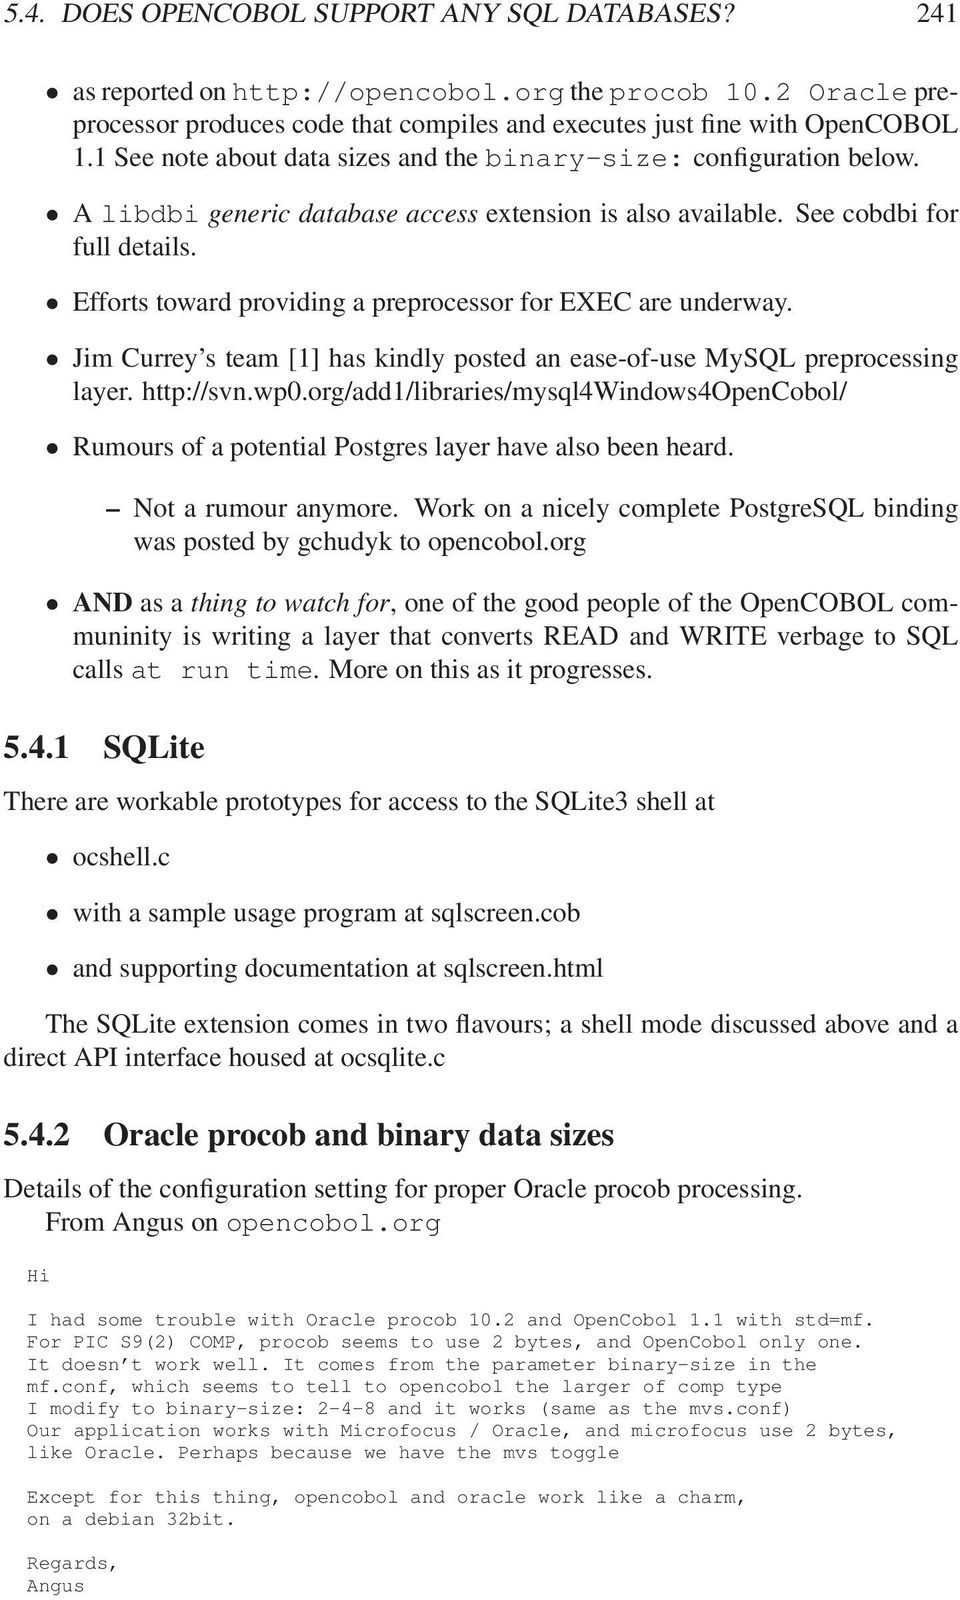 5 4 Does OpenCOBOL support any SQL databases? - PDF